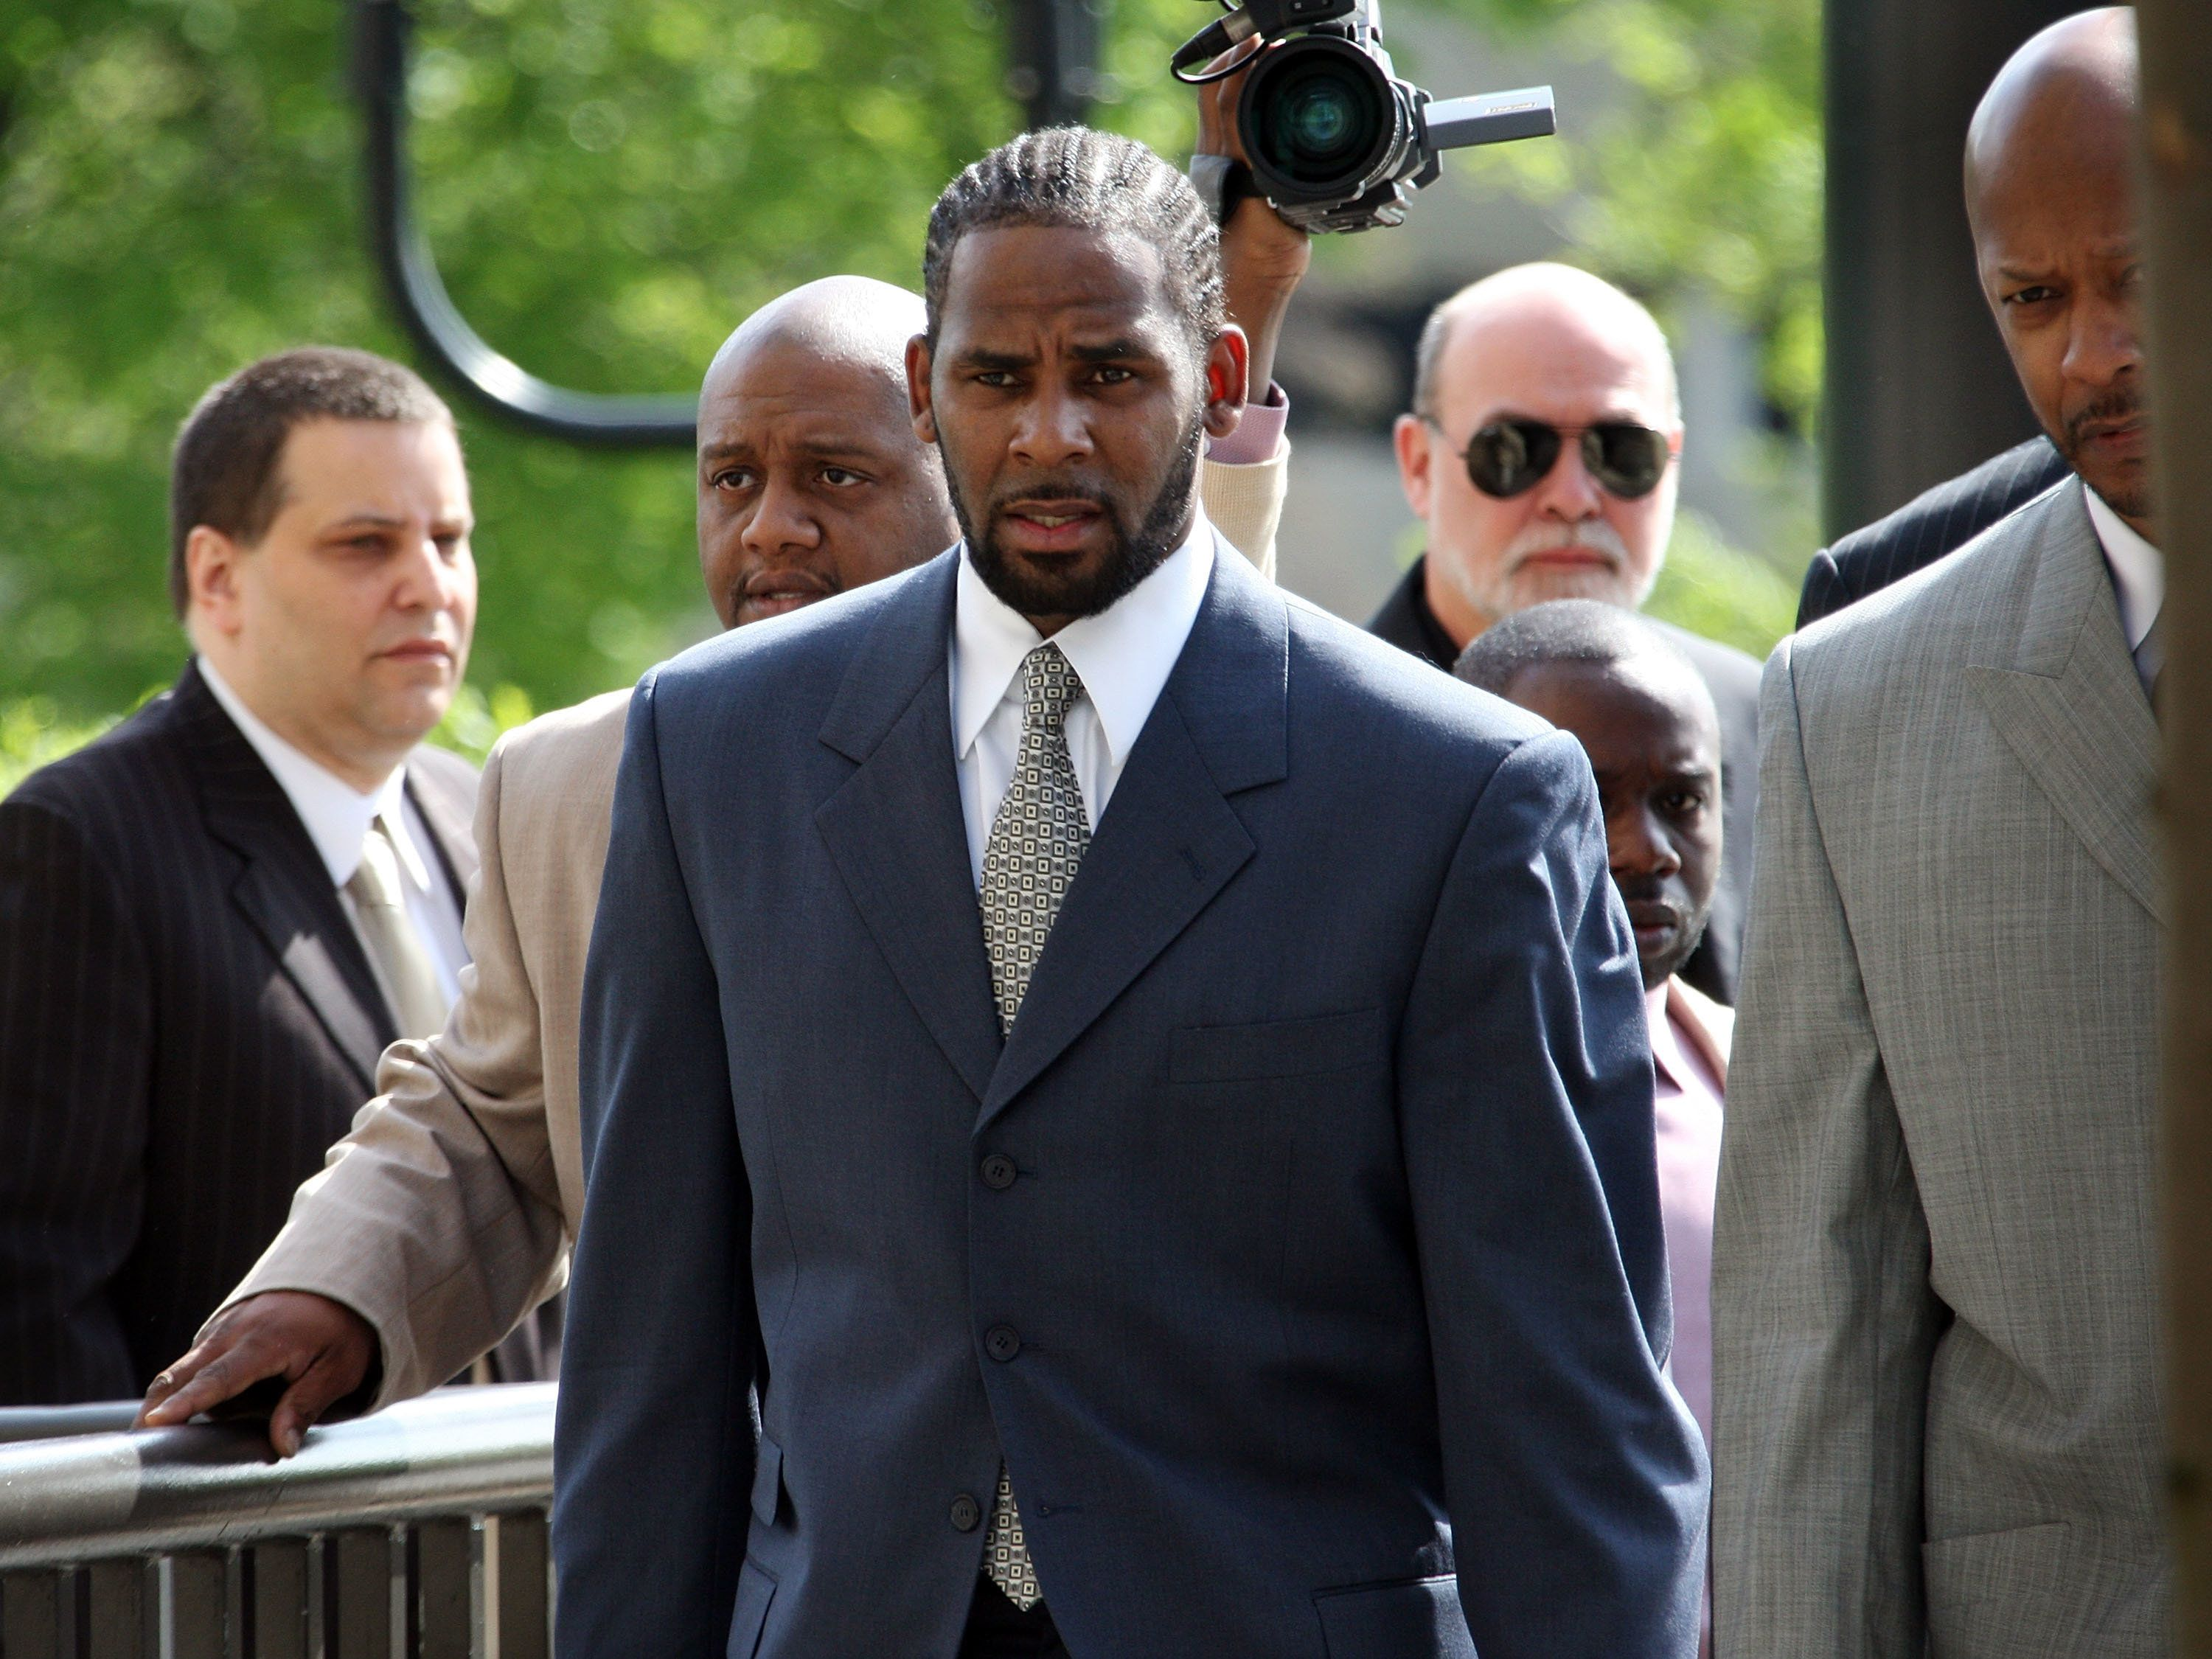 R. Kelly accused of grooming underage girl to be his 'sex pet'